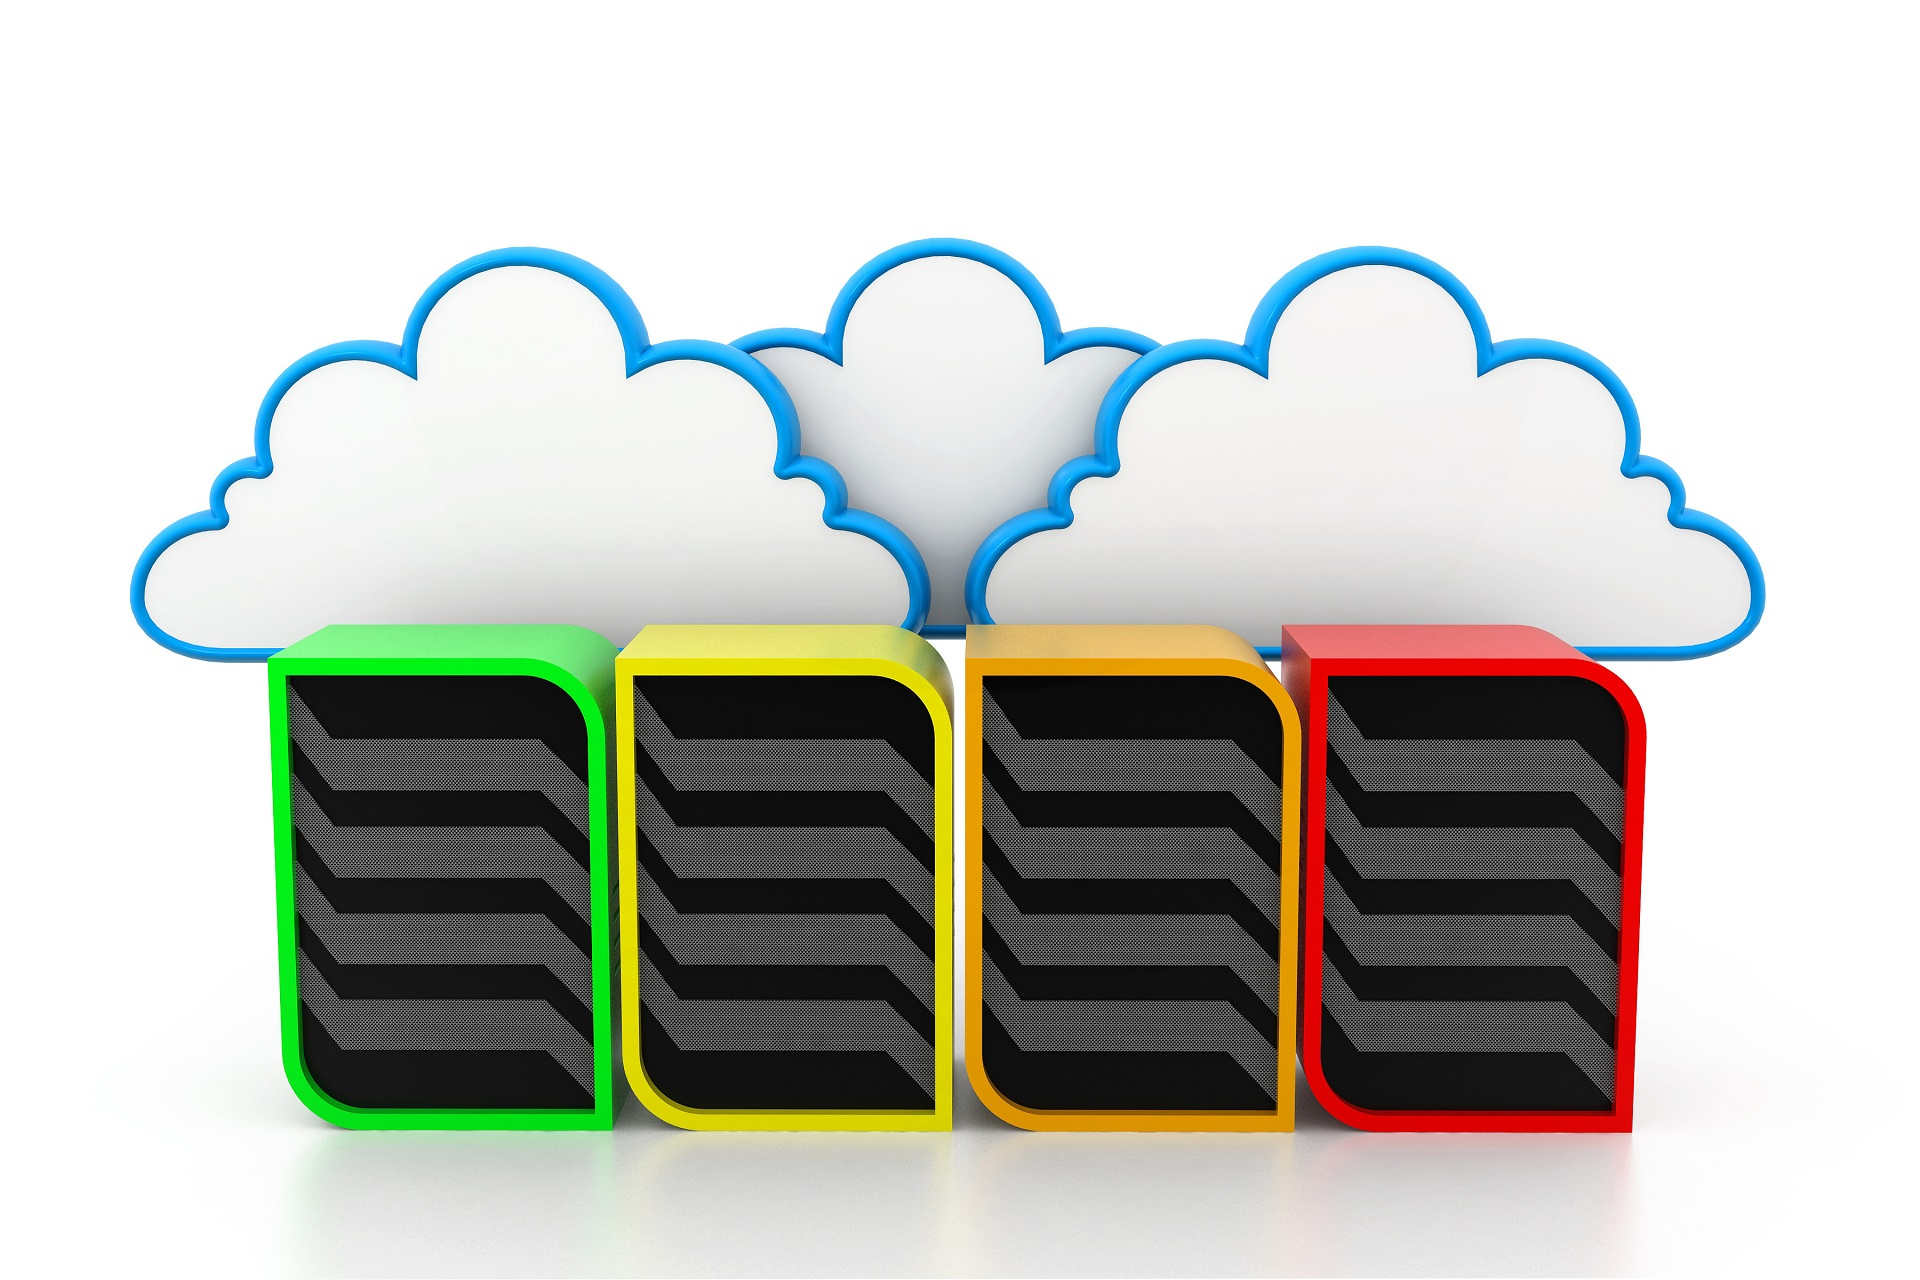 Servers with Different Colour's in Front of a Cloud